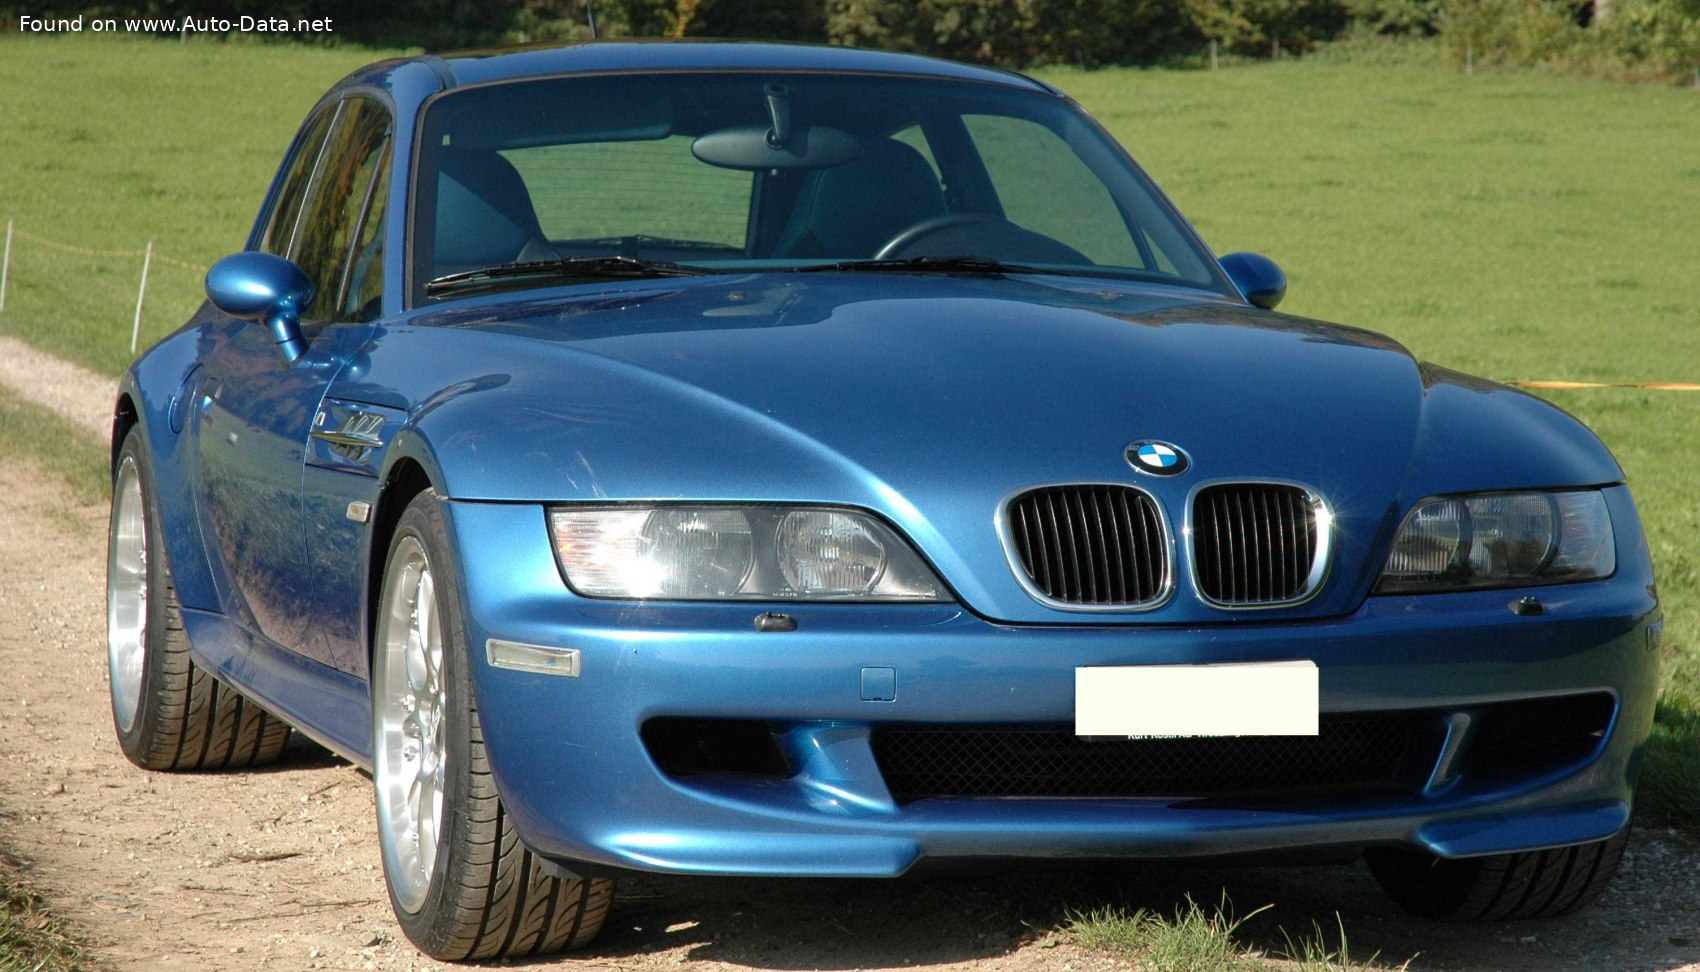 1997 Bmw Z3 Coupe E36 8 2 8 192 Hp Technical Specs Data Fuel Consumption Dimensions